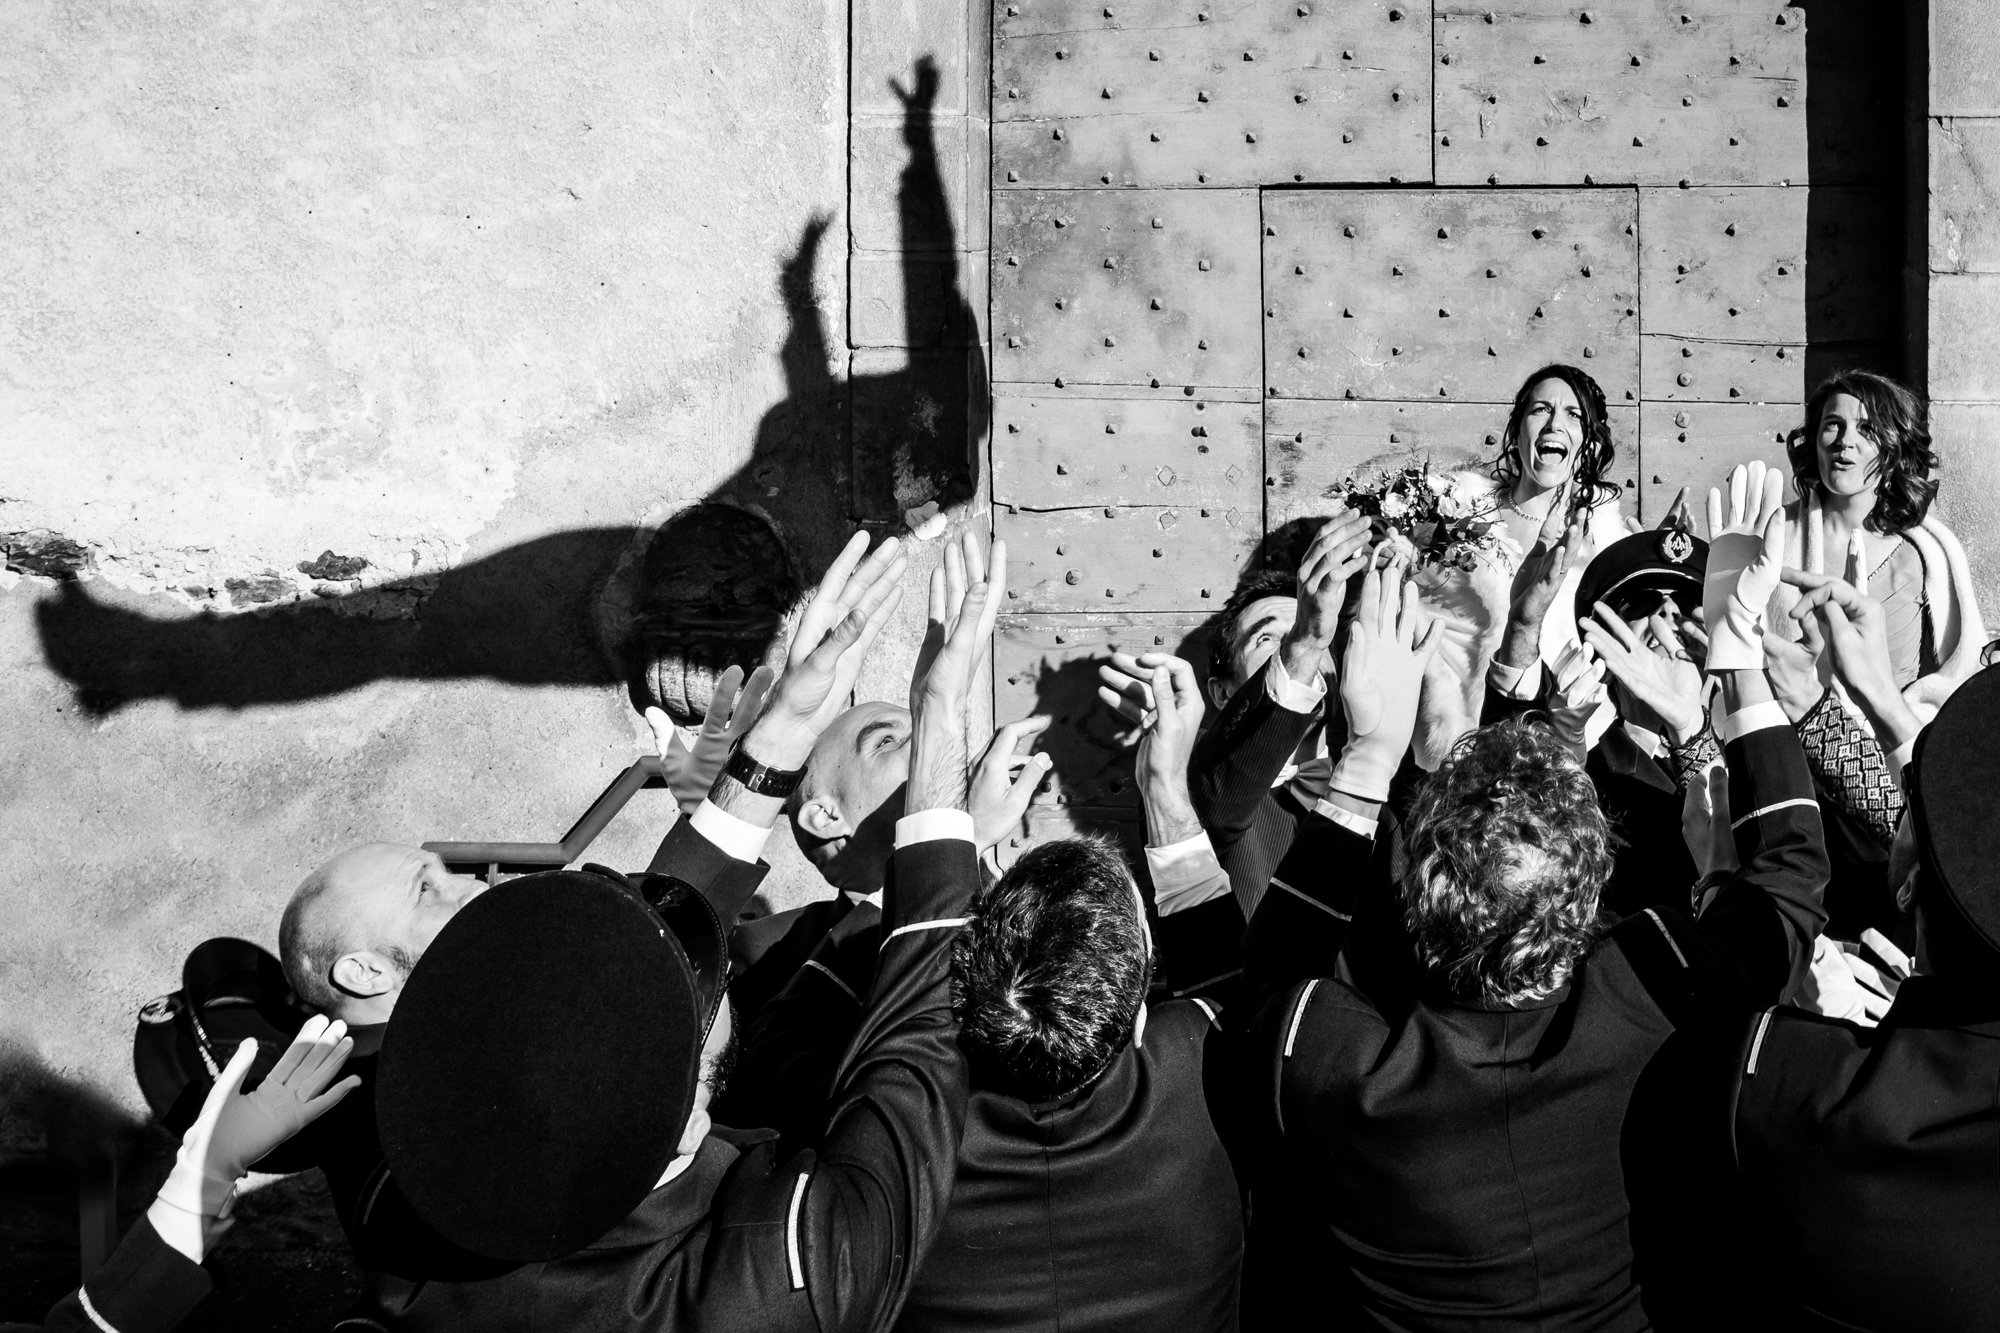 50-best-documentary-wedding-photos-of-the-decade-photo-by-william-lambelet